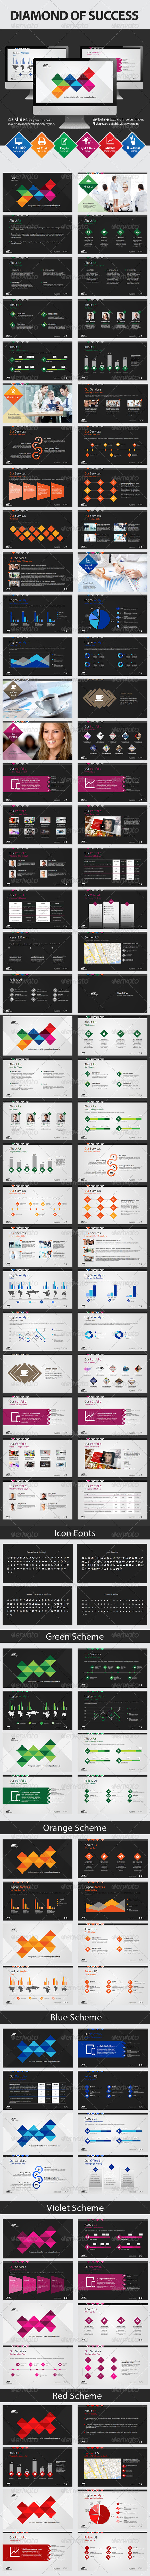 GraphicRiver The Diamond of Success Powerpoint Presentation 7101256